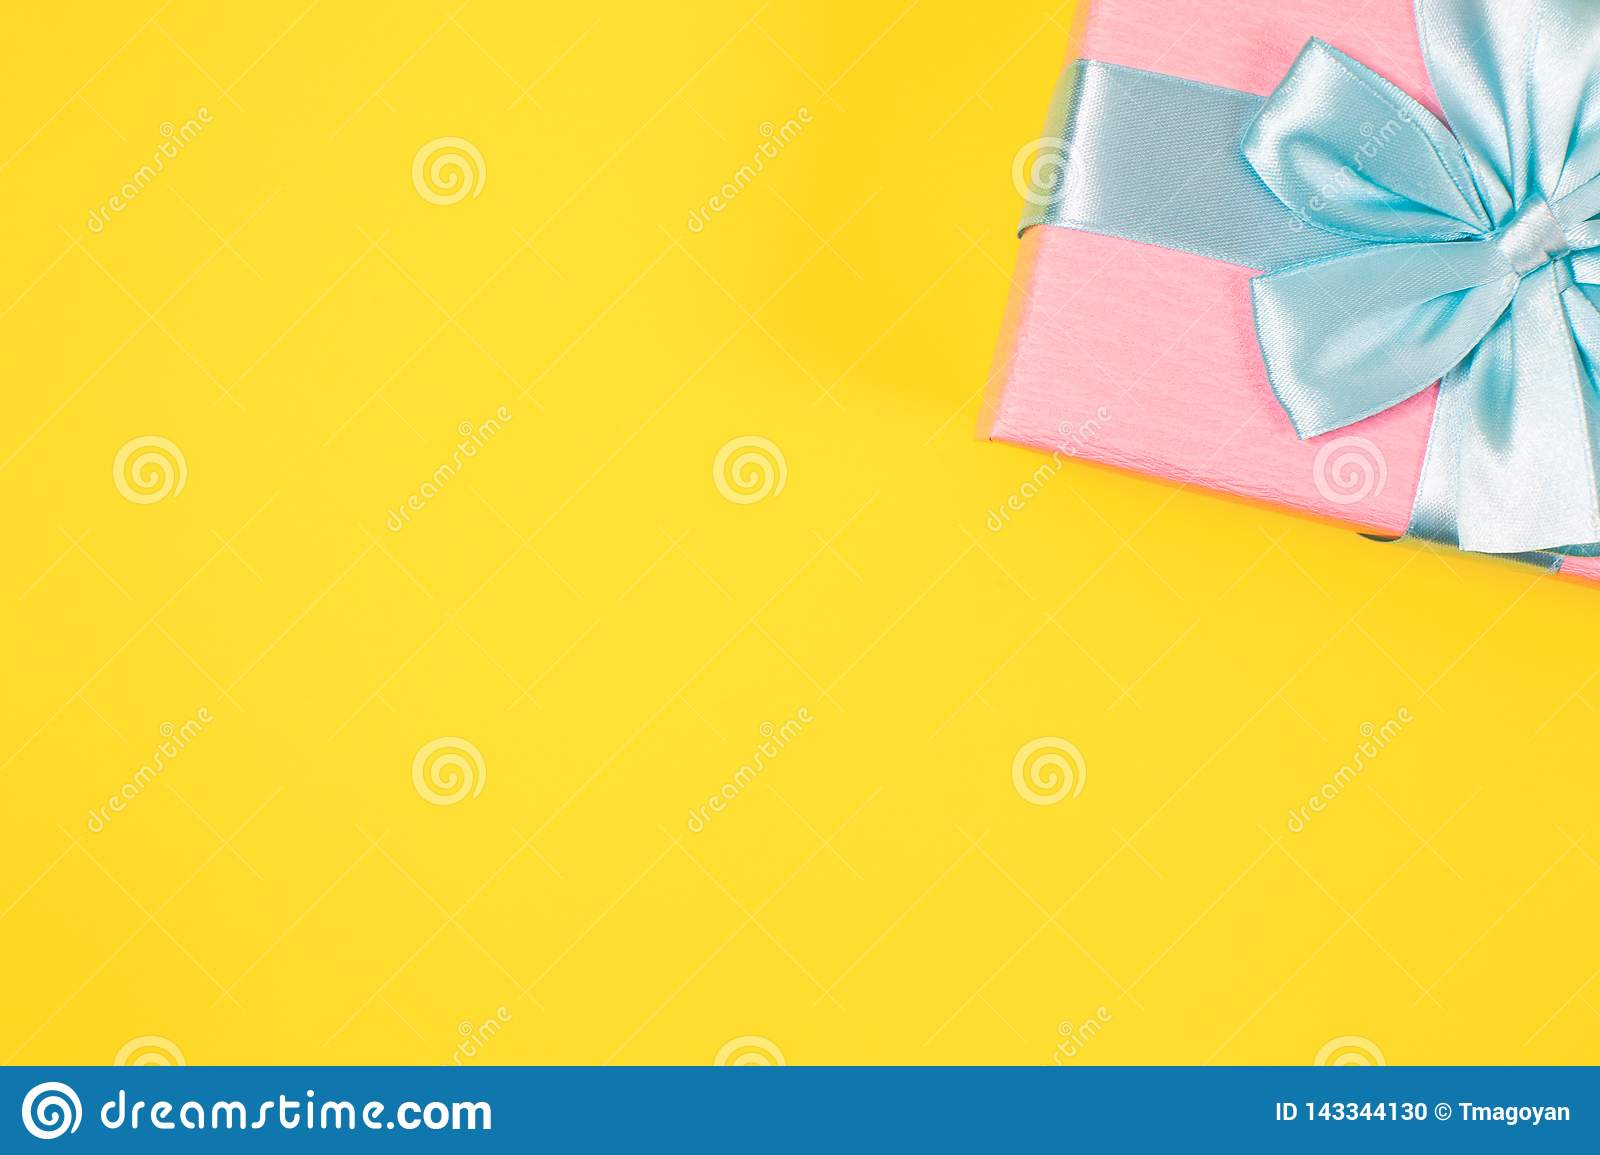 Pink gift box tied with blue ribbon with bow at the top on yellow background. Copy space for text. Minimal flat lay. Top view.